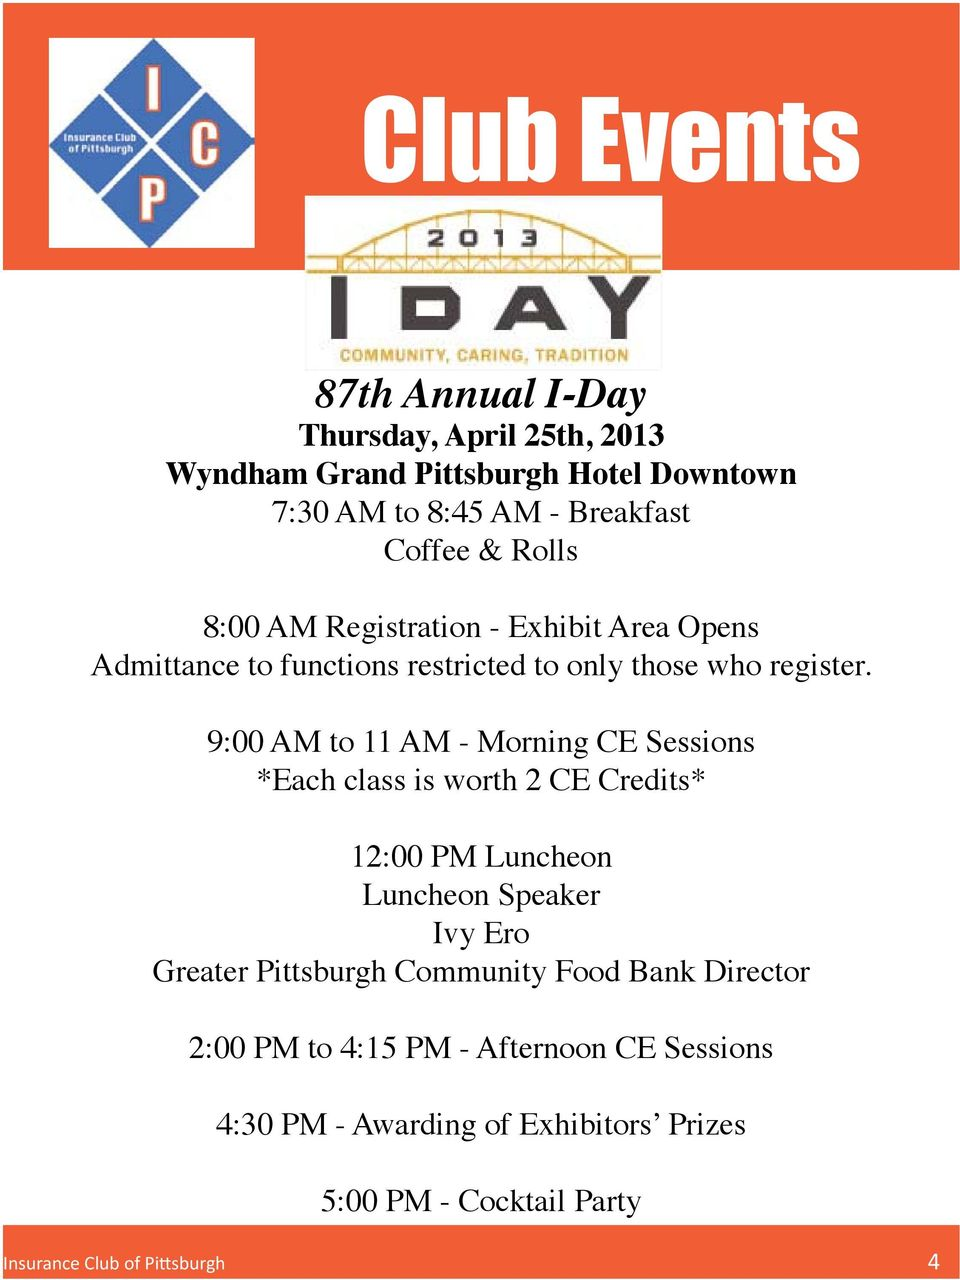 9:00 AM to 11 AM - Morning CE Sessions *Each class is worth 2 CE Credits* 12:00 PM Luncheon Luncheon Speaker Ivy Ero Greater Pittsburgh